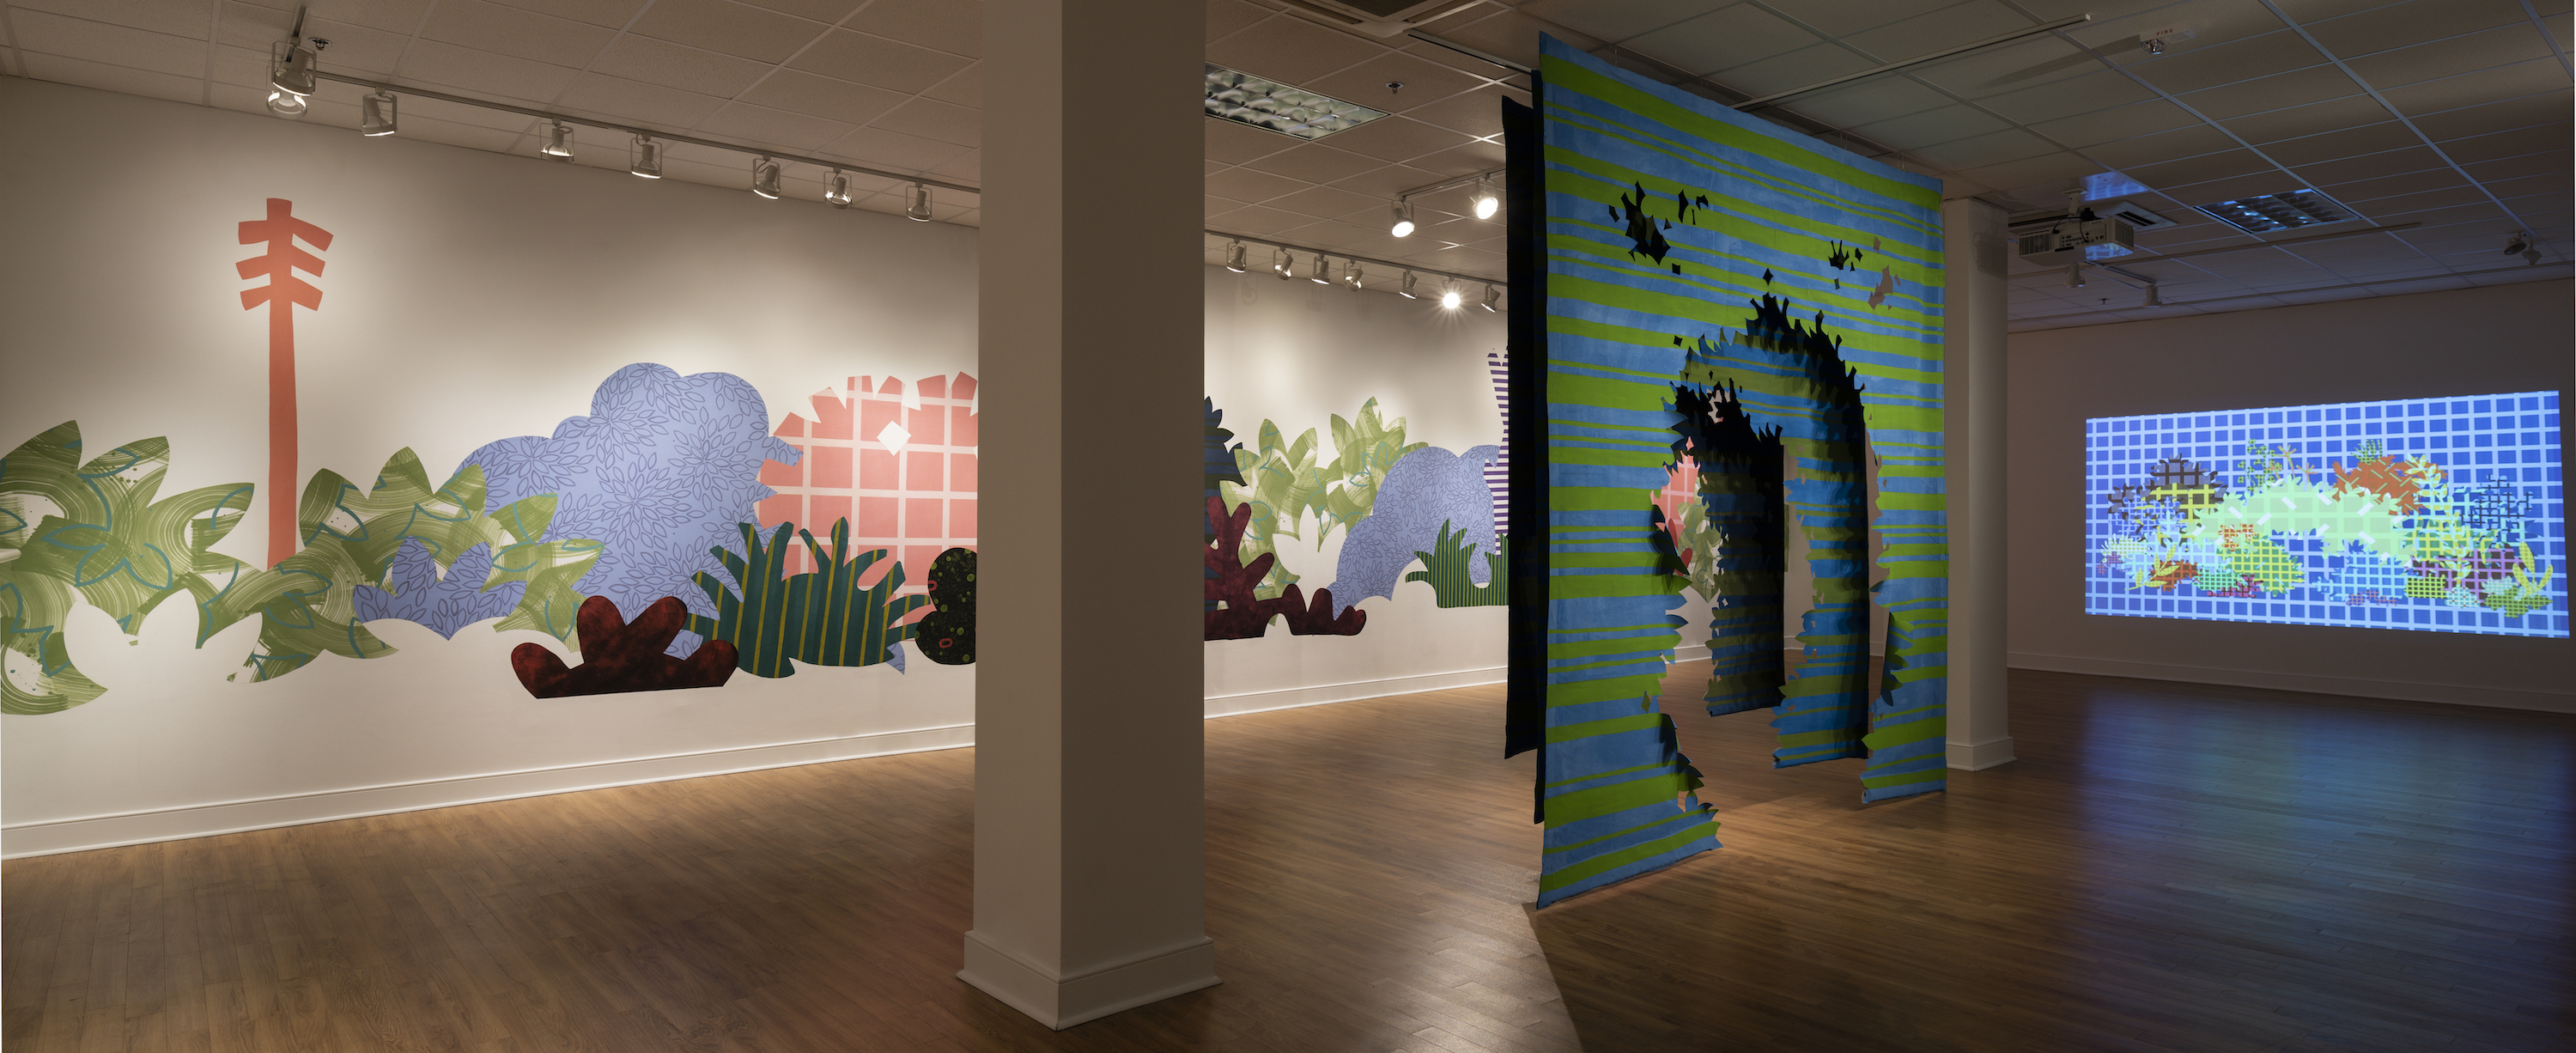 """Installation of """"Aggregate Optics of Make-A-Do"""" 2019; University of Memphis, Fogelman Galleries; Works from right to left: Blinky Bricolage (2019) 3 minute animation on loop, projection; Proscenium Hedgerow (2018) 11ft x 10ft x 2ft; series of three latex on cut muslin panels; Piecemeal Promenade (2019) 48ft x 11ft; latex on muslin cut-outs, adhered to wall"""